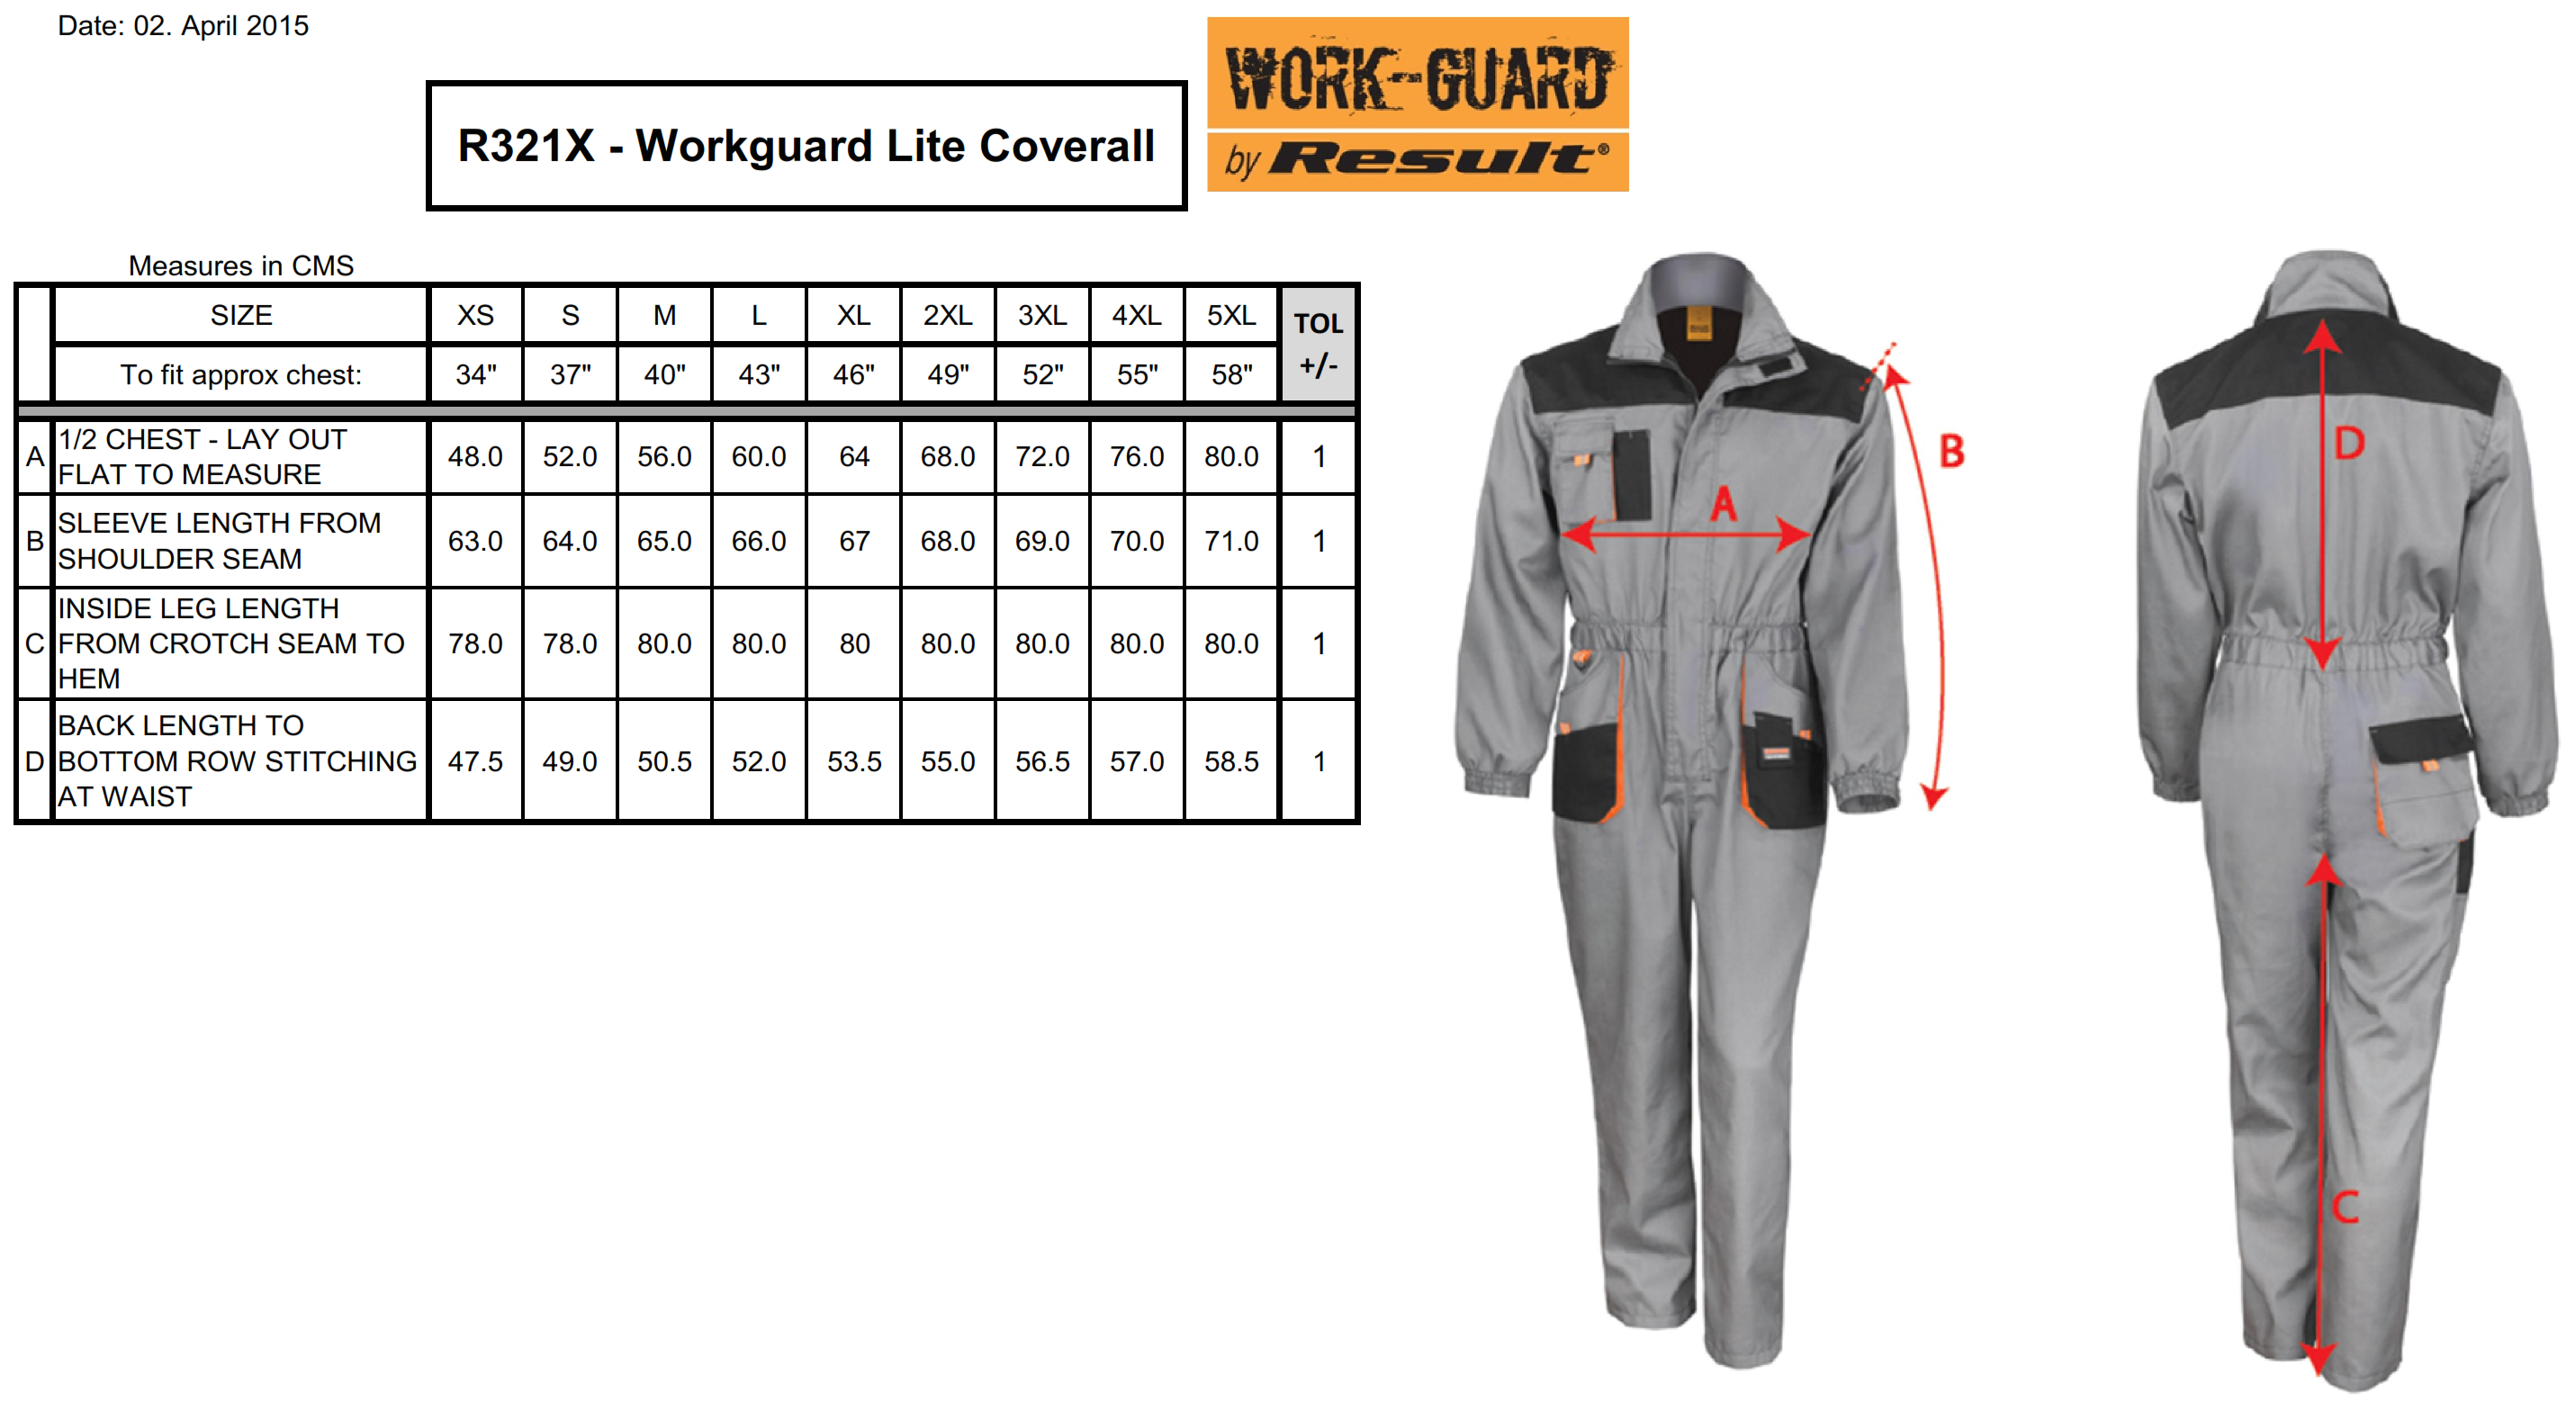 Result: LITE Coverall R321X